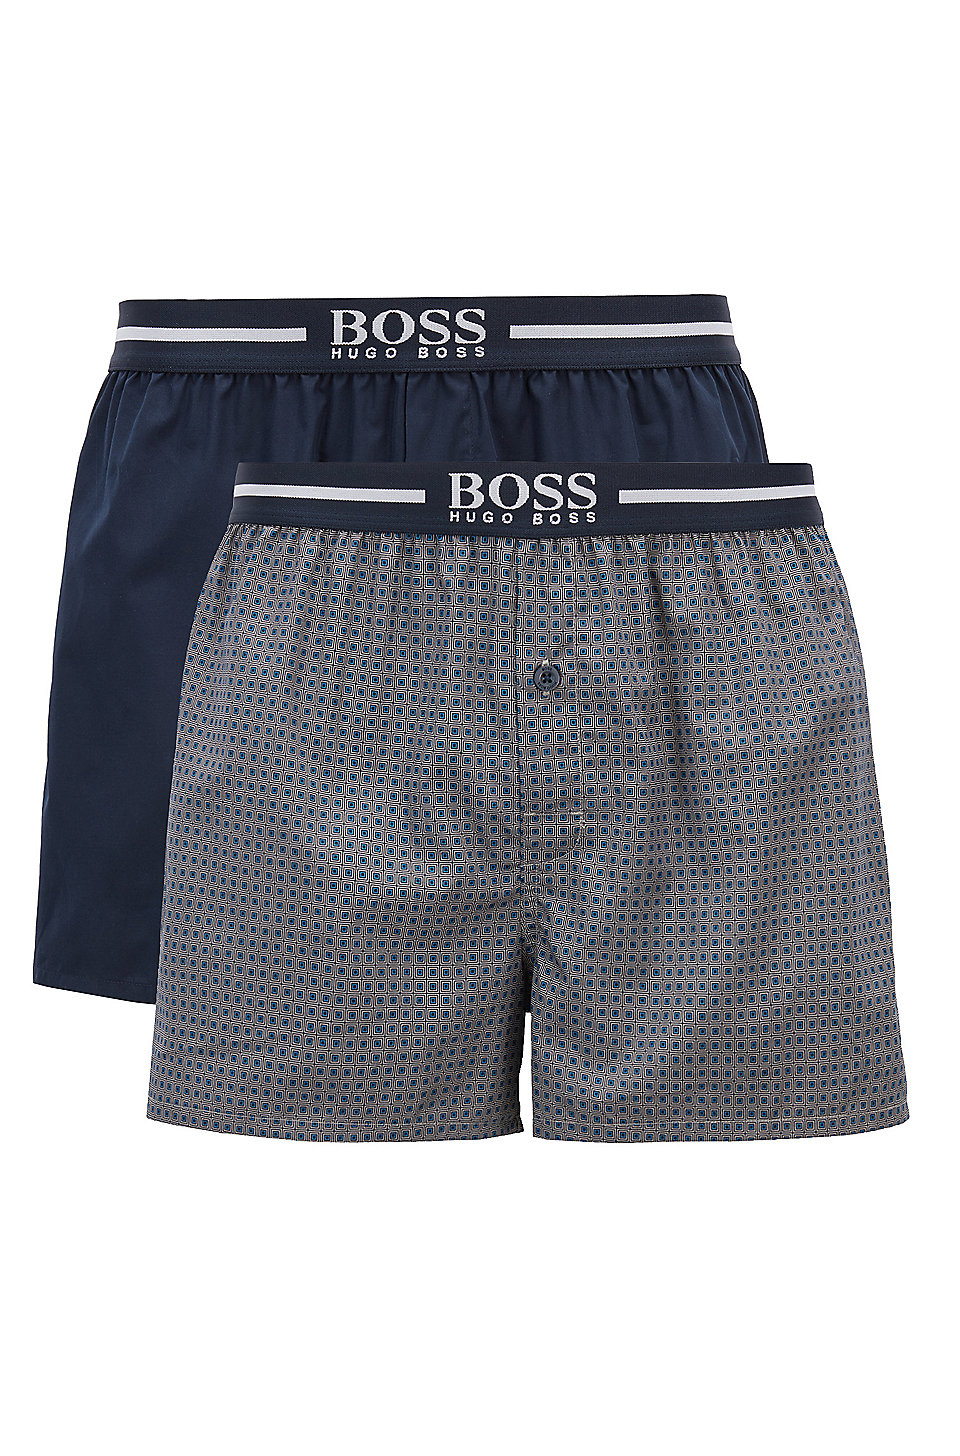 b8a265951 BOSS - Two-pack of cotton pyjama boxers with logo waistbands